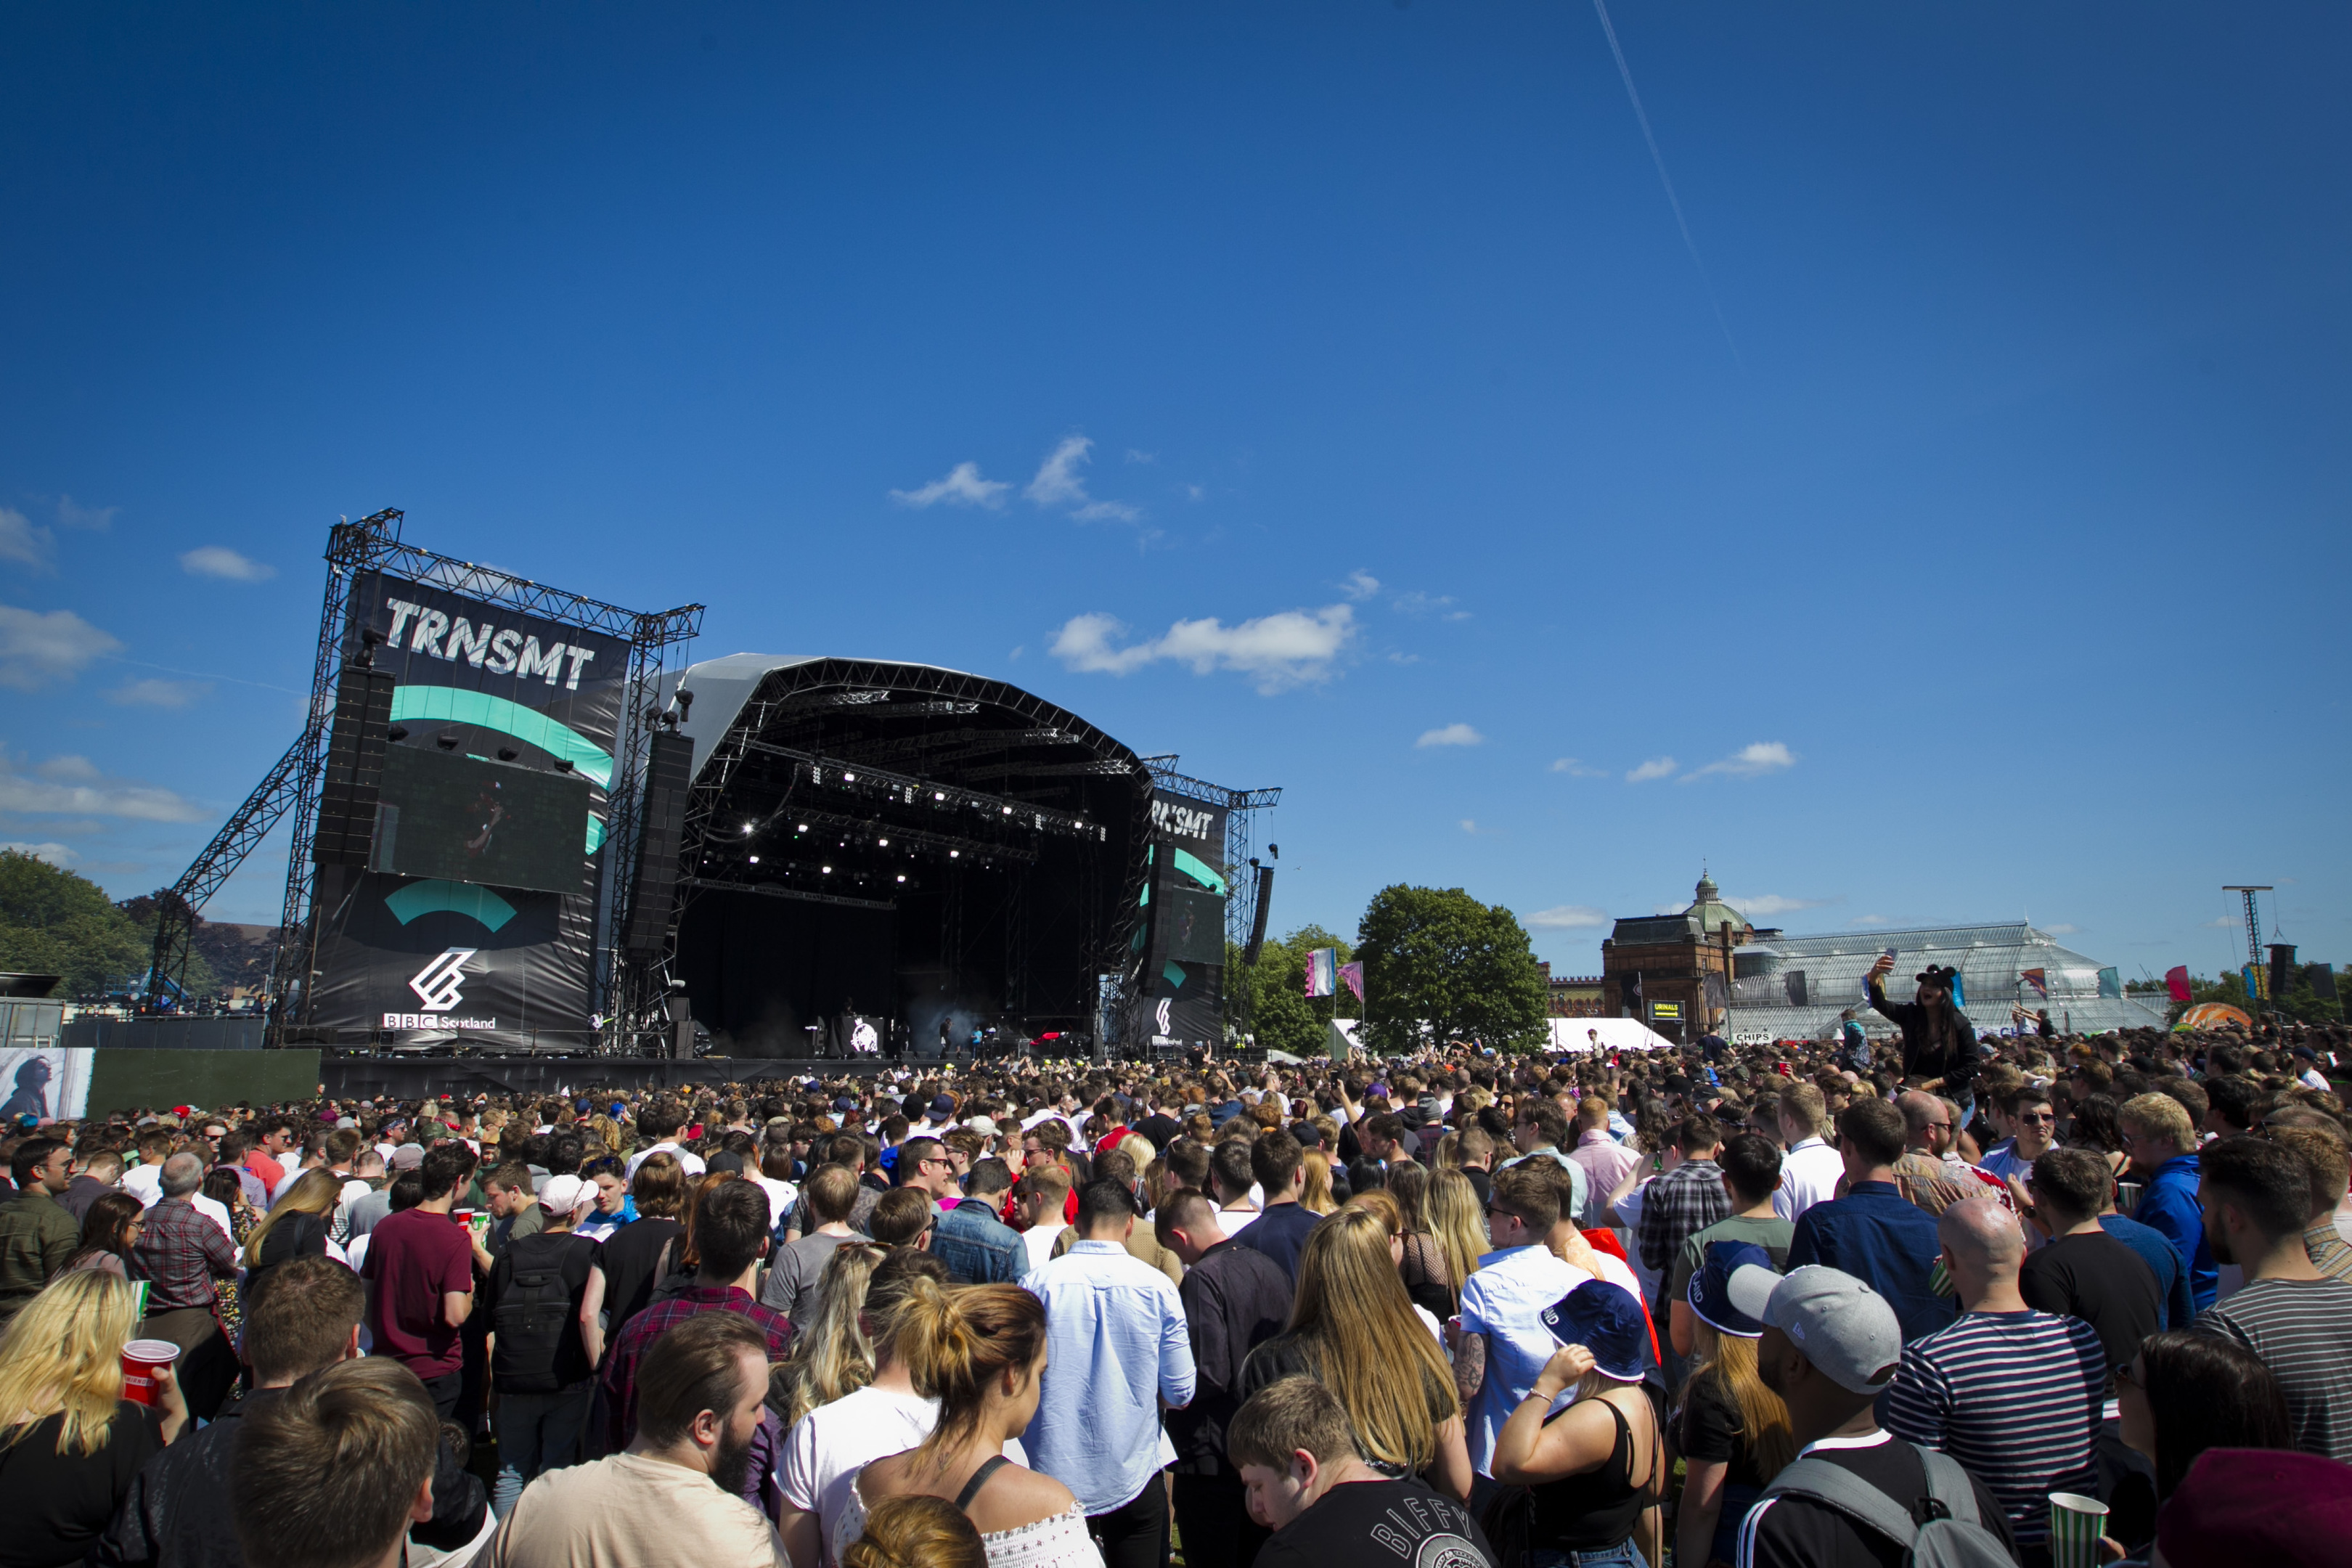 The TRNSMT music festival in Glasgow is scheduled for July